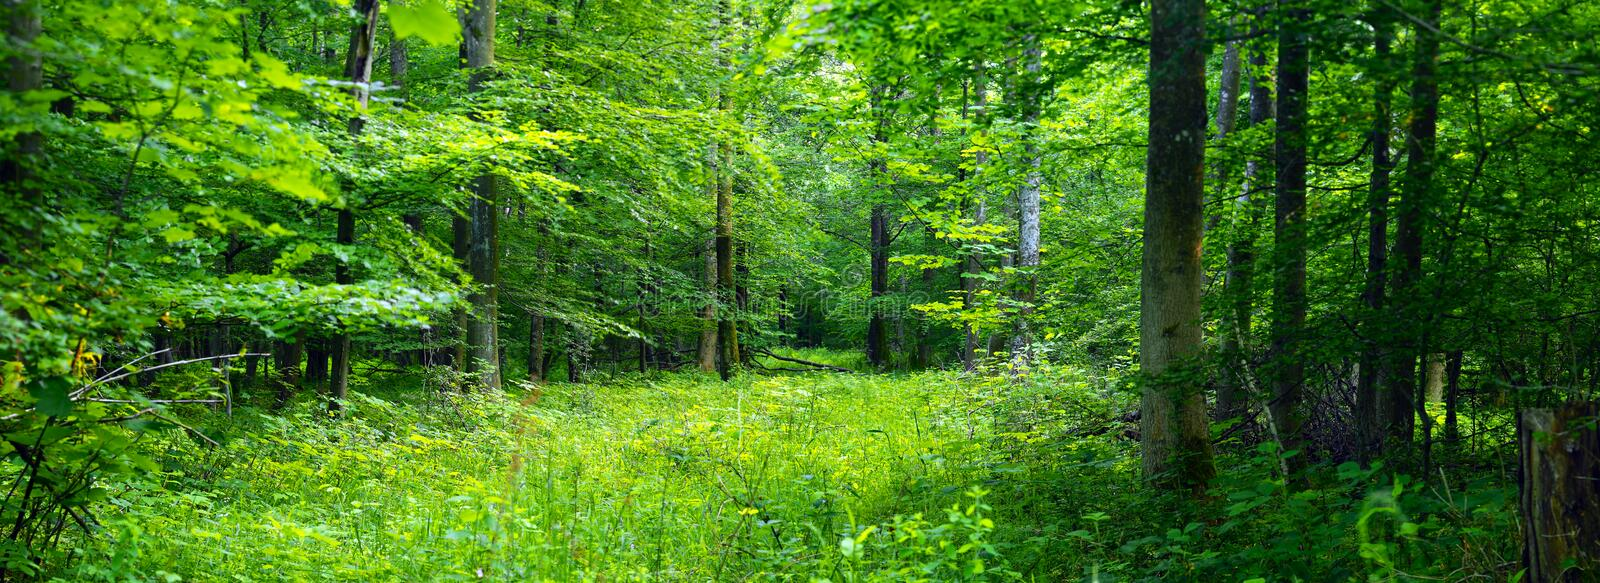 Download Deciduous forest stock photo. Image of image, horizontal - 25367456